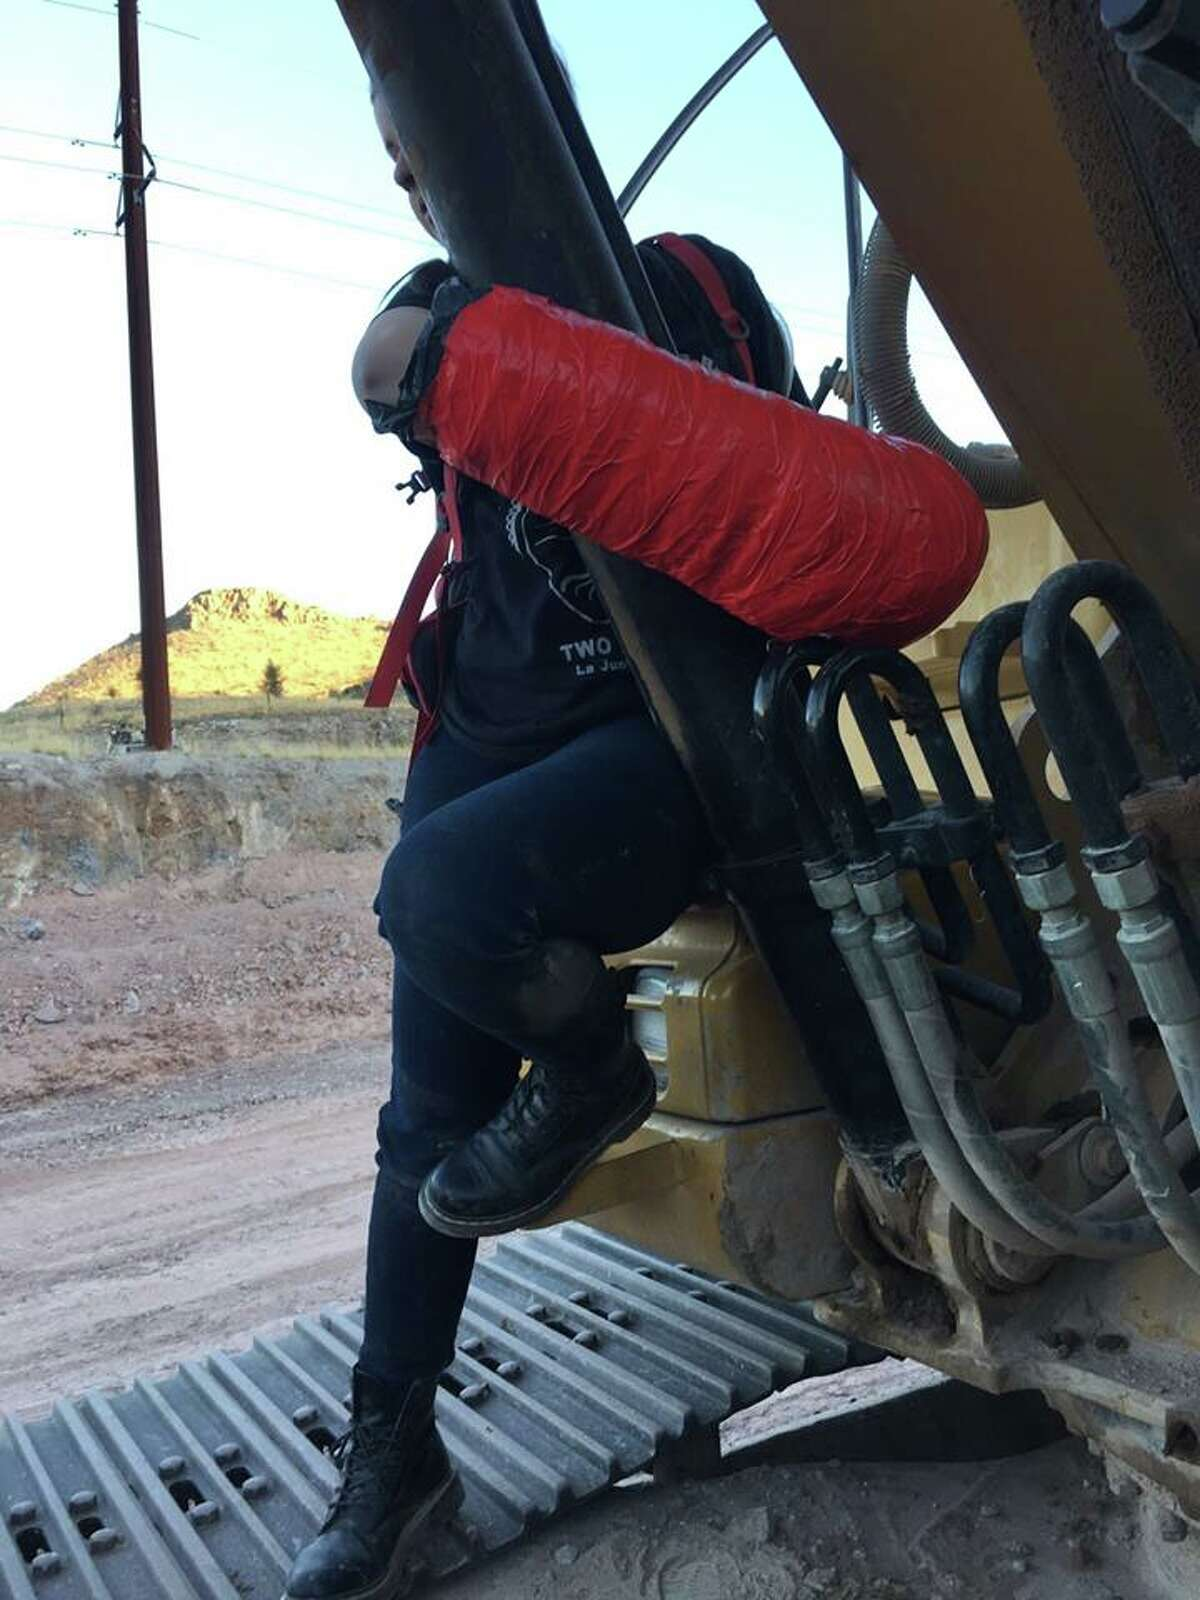 Presidio County deputies had to cut through wire mesh, rebar, concrete and plastic piping to remove a homemade cast attaching Anna Kruger, 21, to a Trans-Pecos Pipeline excavator on March 14, 2017. Courtesy of the Presidio County SheriffÂ?'s Office